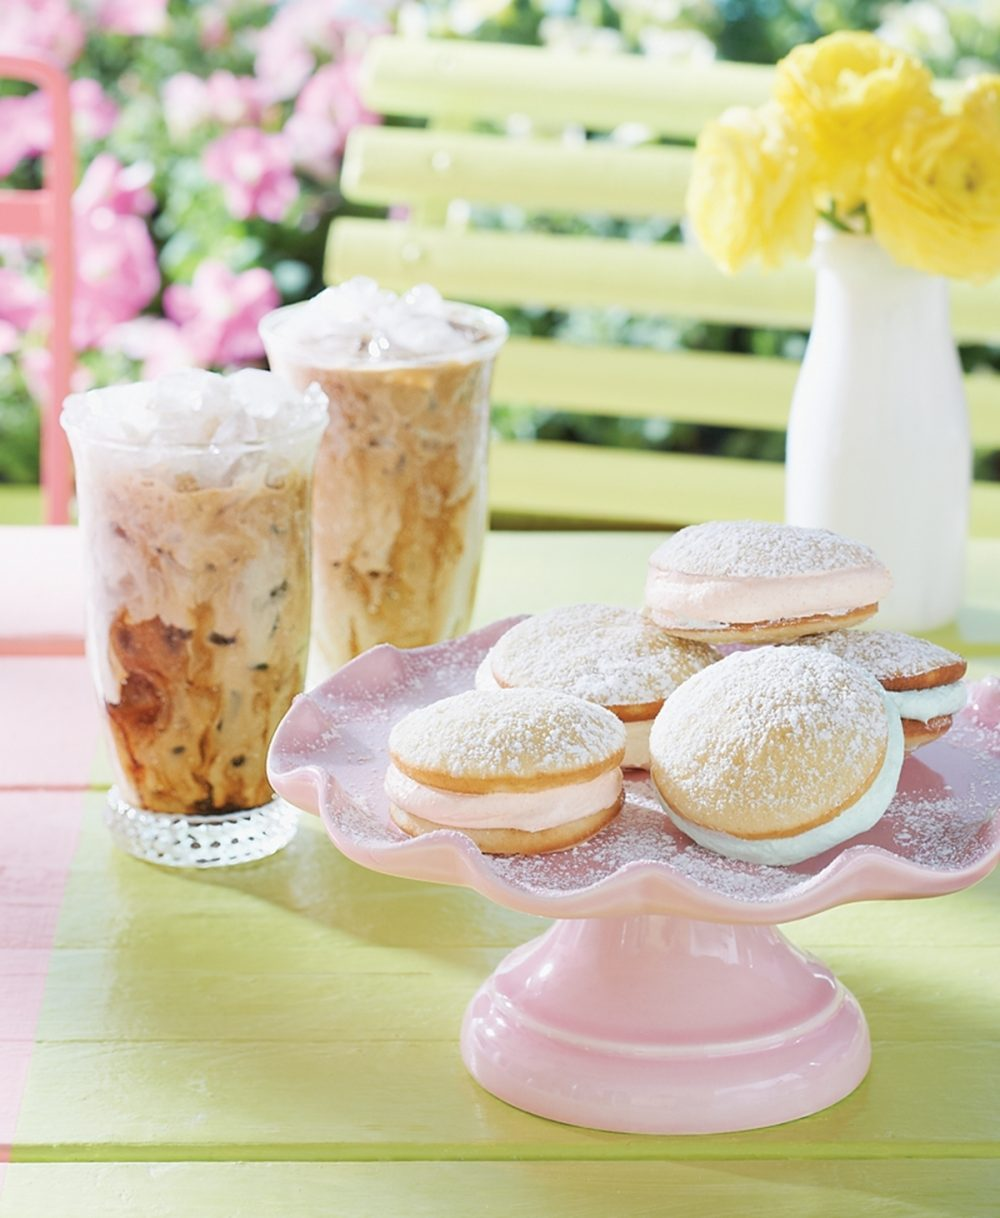 Fruity Whoopie Pies are served with Arctic Coffee.